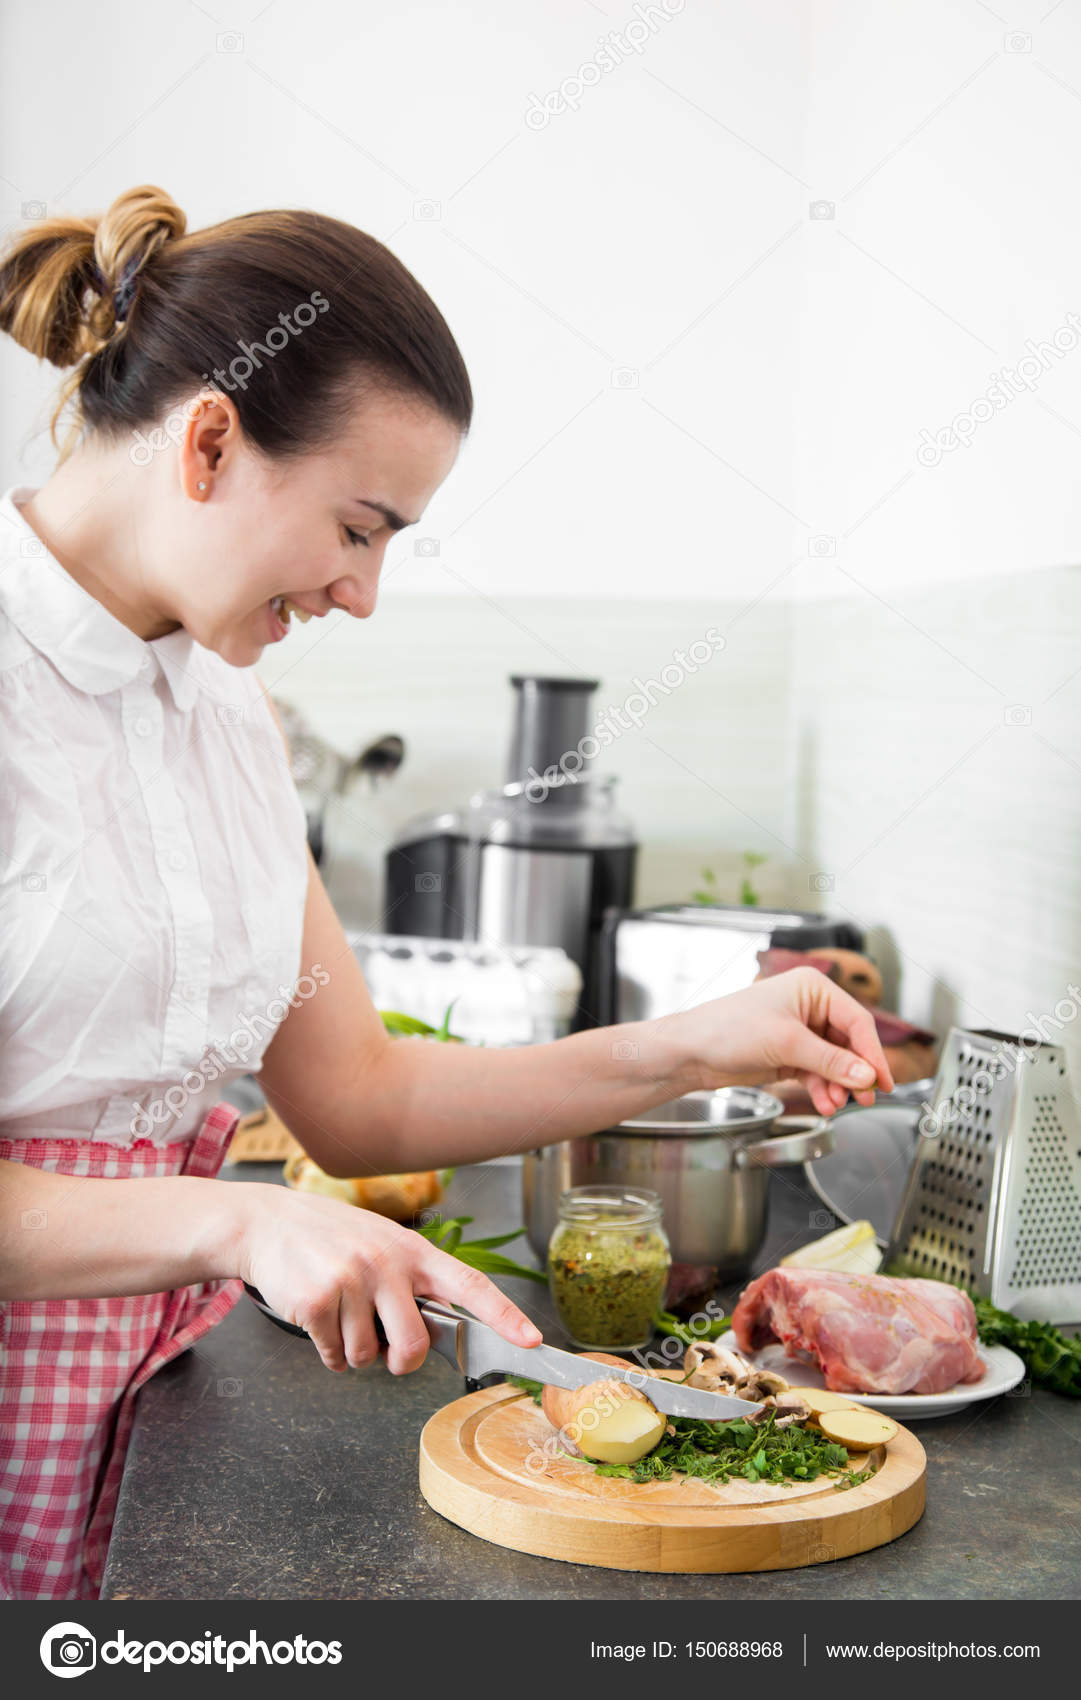 the girl prepares food in the kitchen — Stock Photo © puhimec #150688968